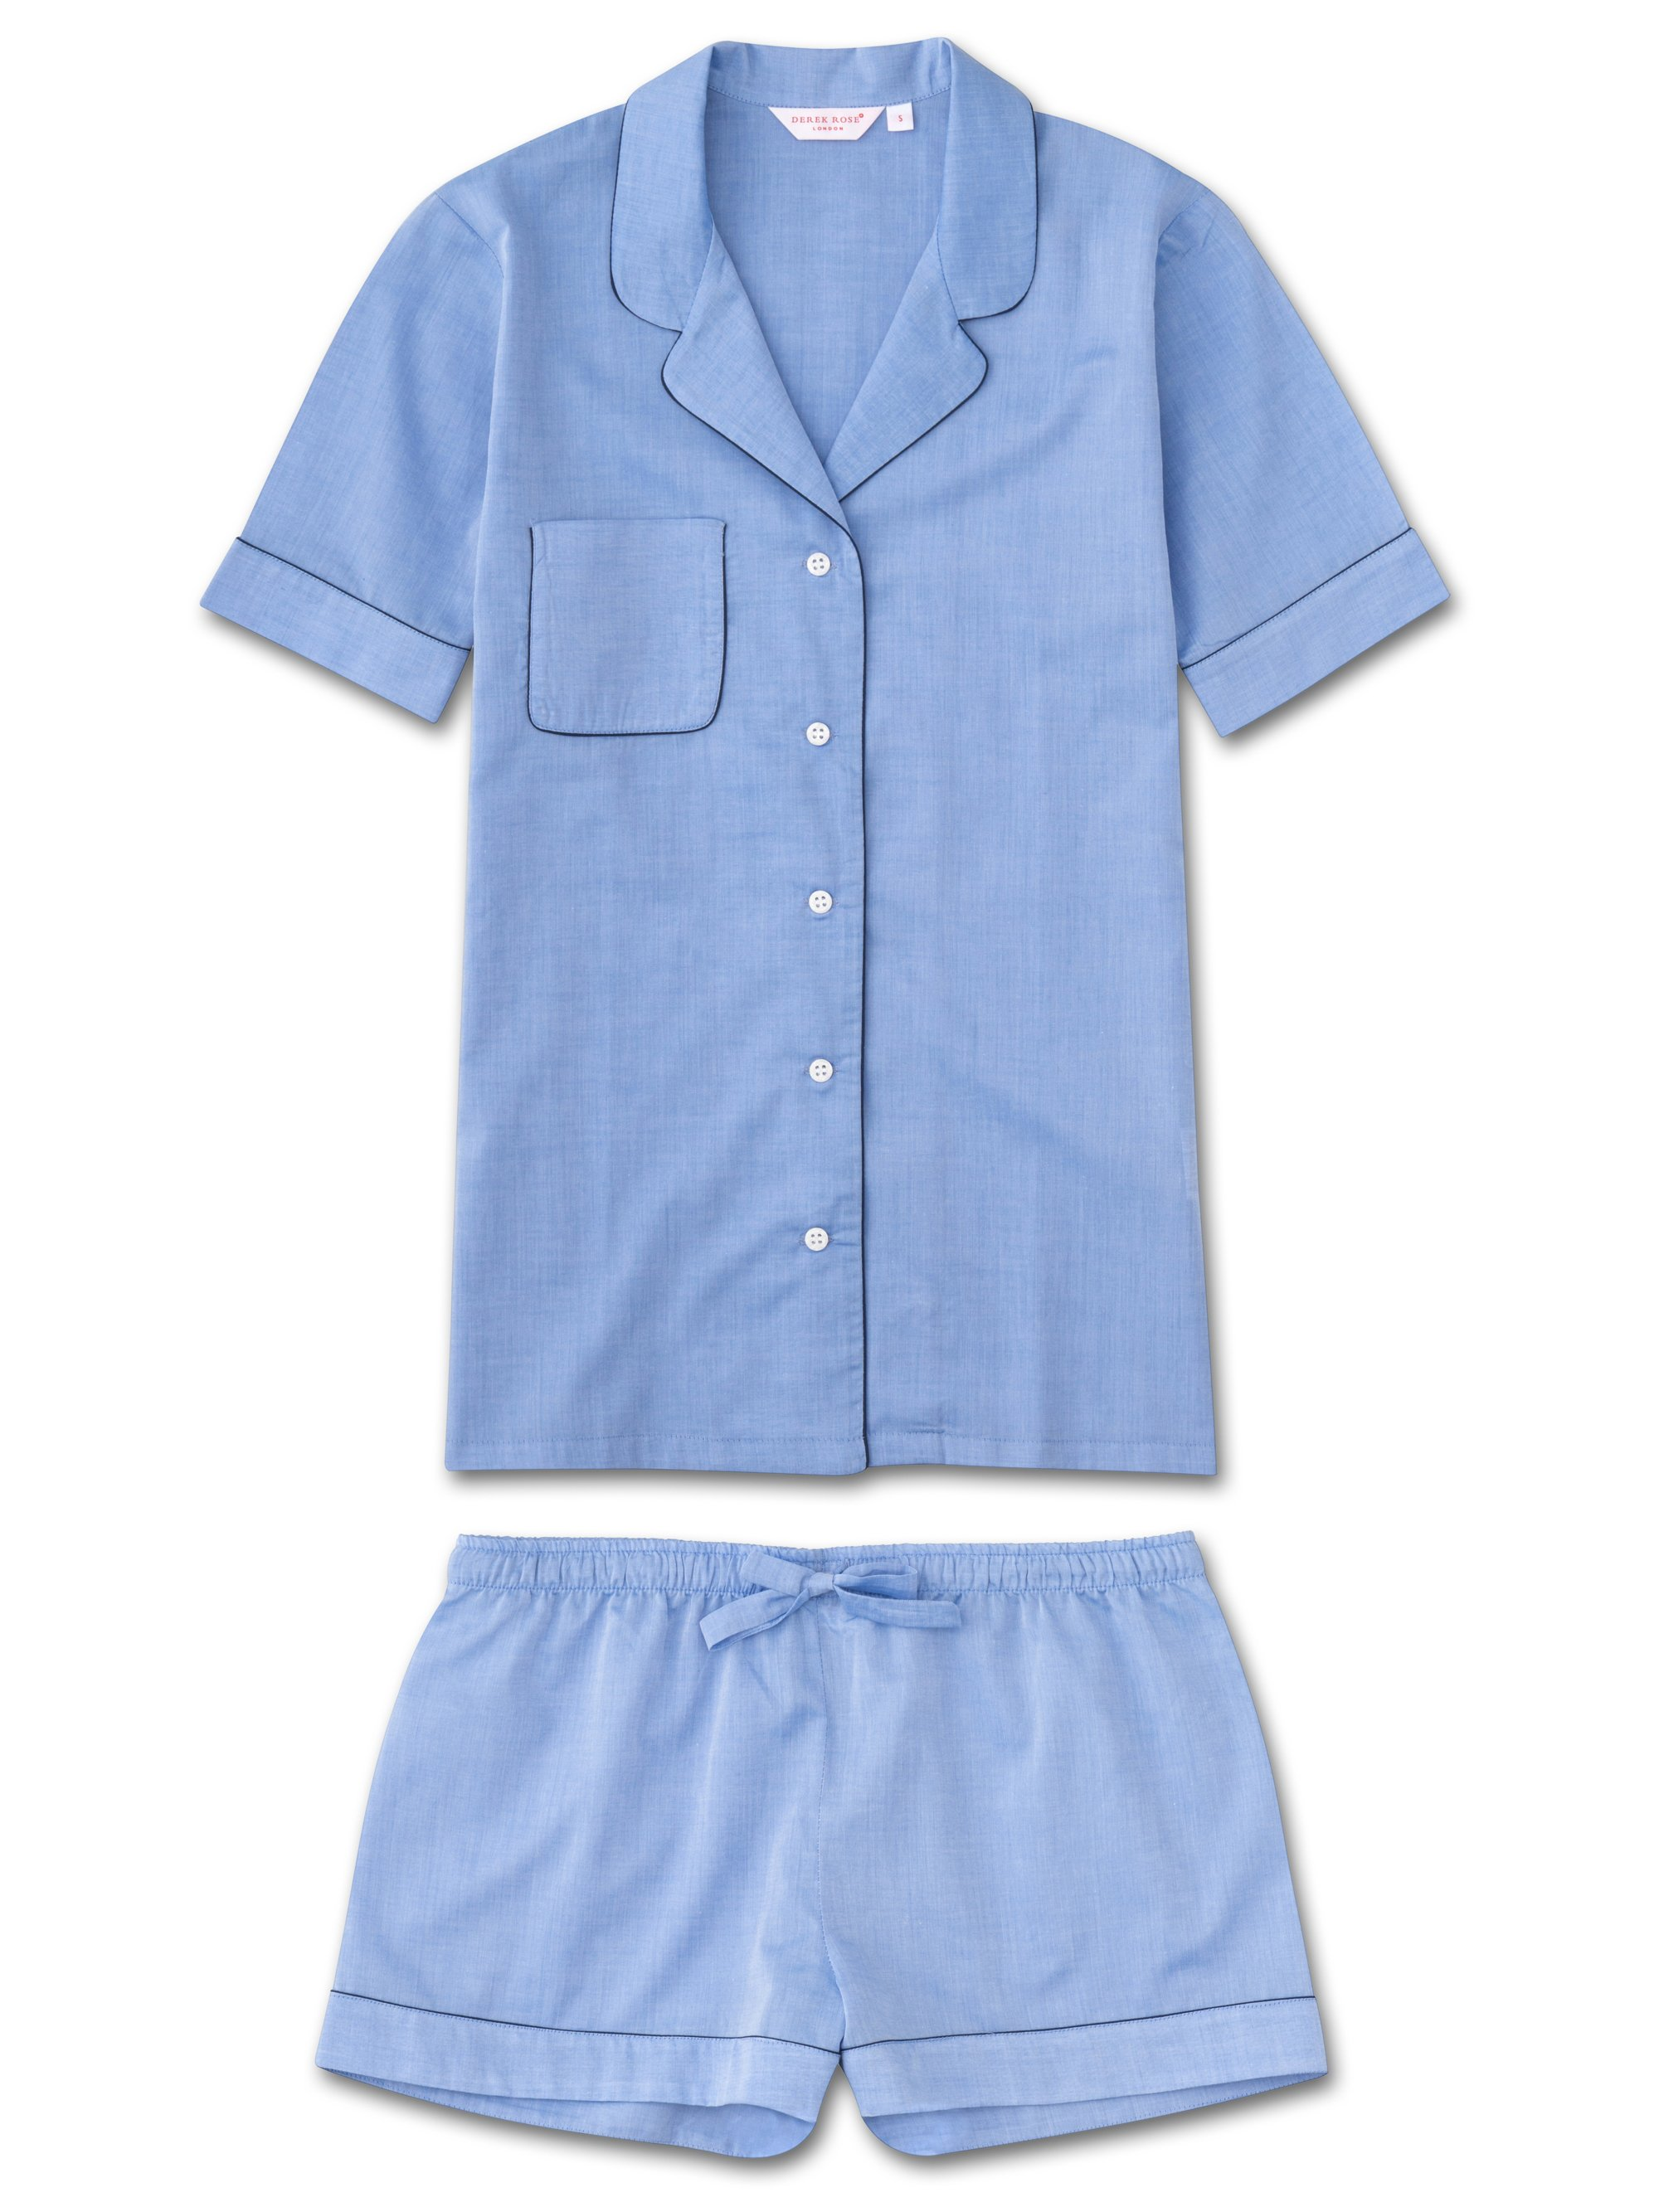 Women's Shortie Pyjamas Amalfi Cotton Batiste Blue